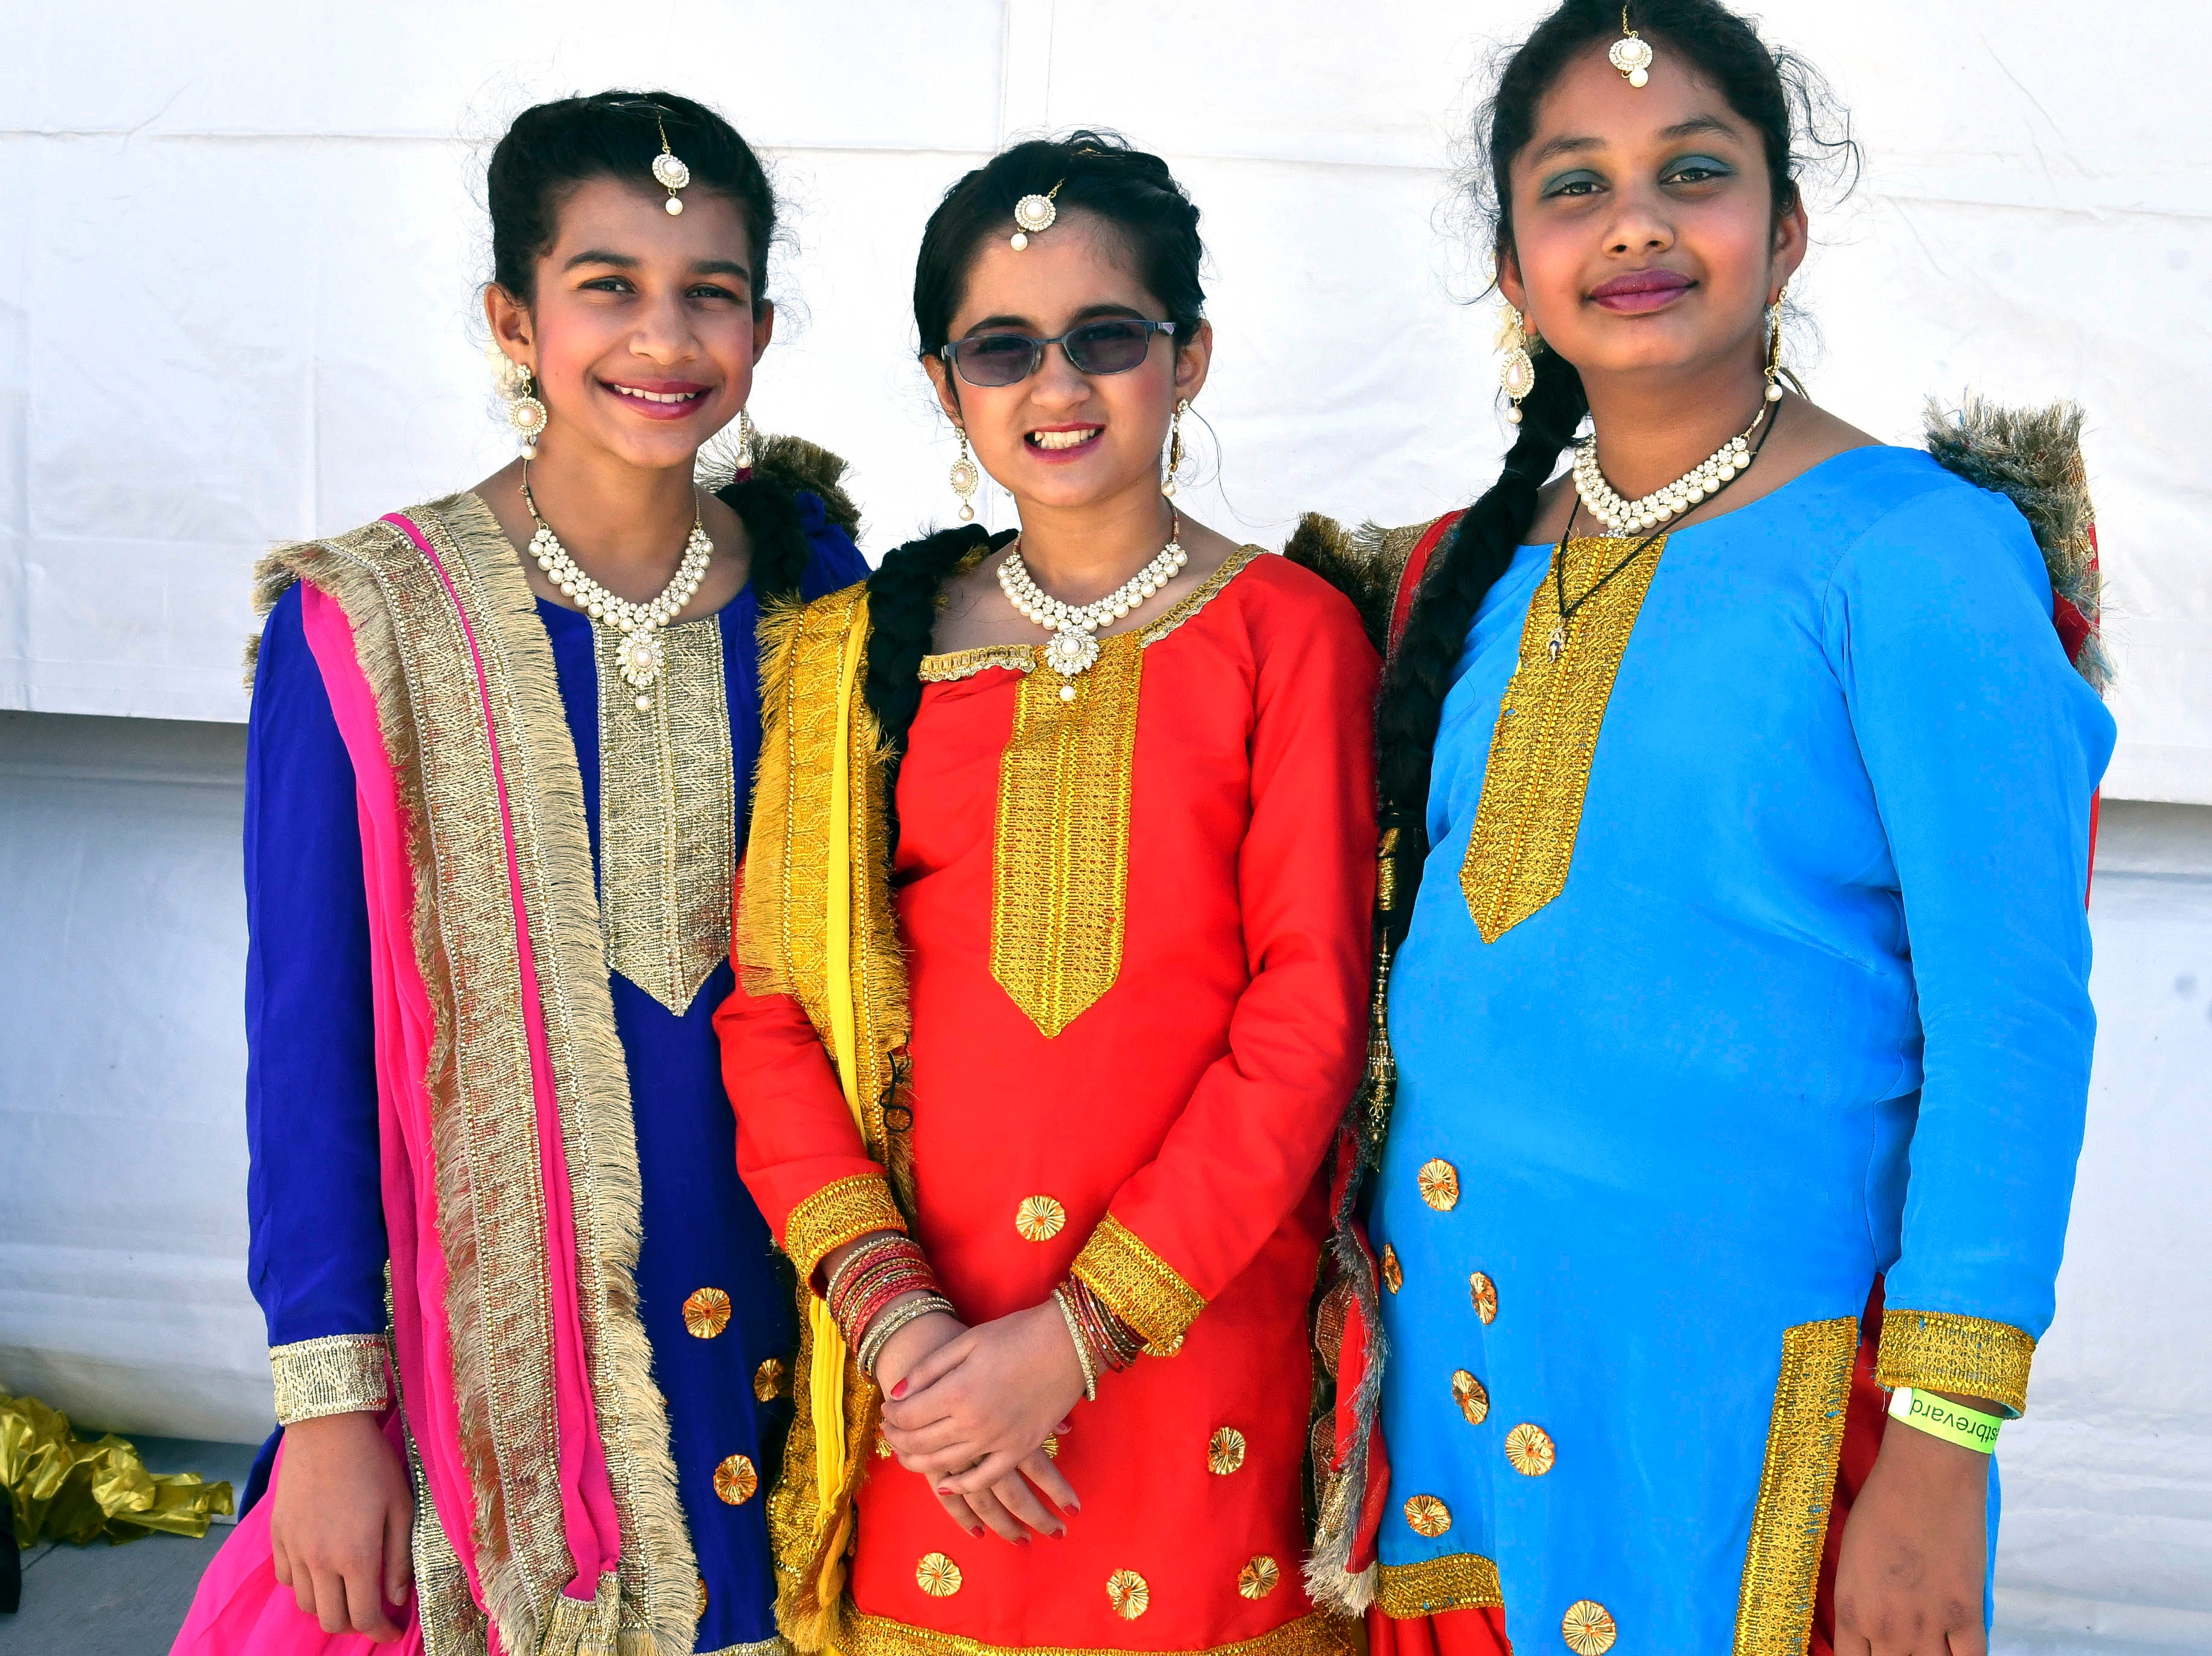 Three members of Punjabi Kudiyan pose for pictures before going on stage to perform at Indiafest Saturday. Indiafest continues Sunday 11-5 at Wickham Park's main pavilion.